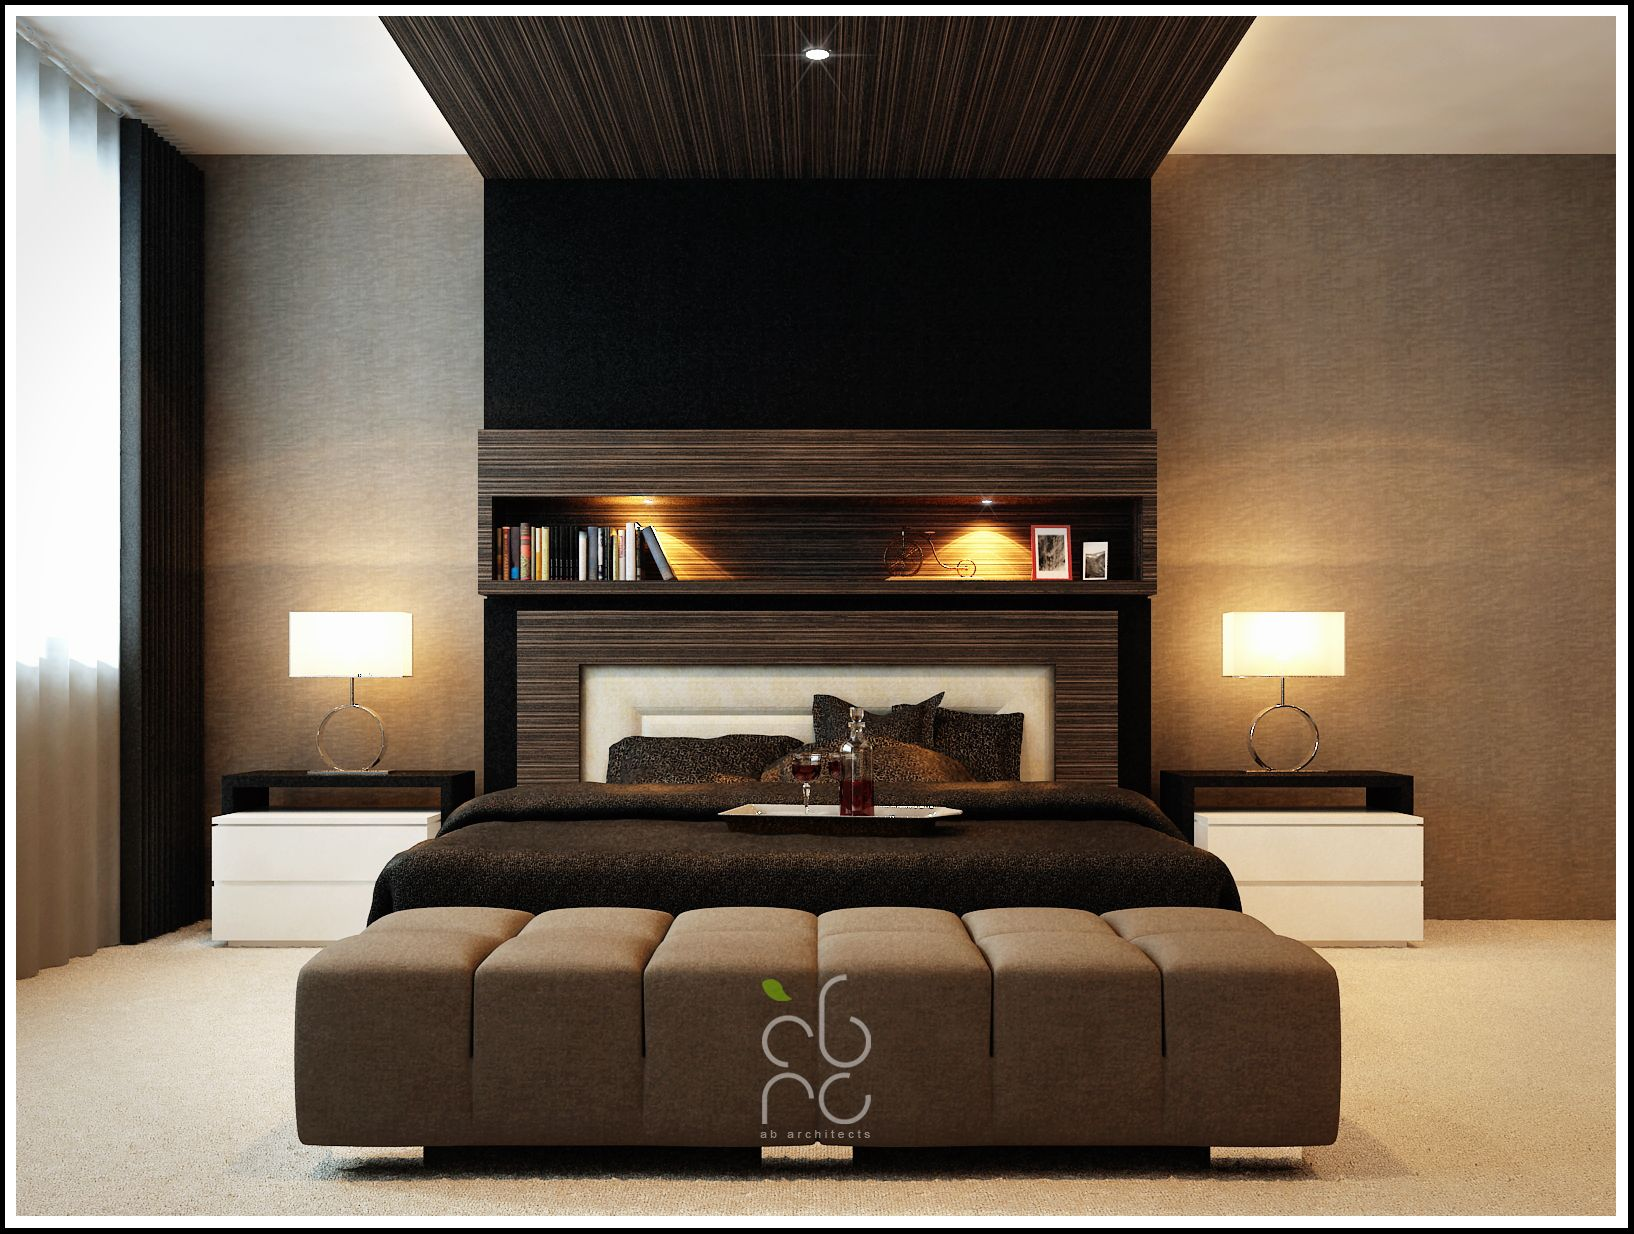 Superbe Contemporary Master Bedroom With Black Comfortable Master Single Bed With  Two Drum Shade Table Lamps Also